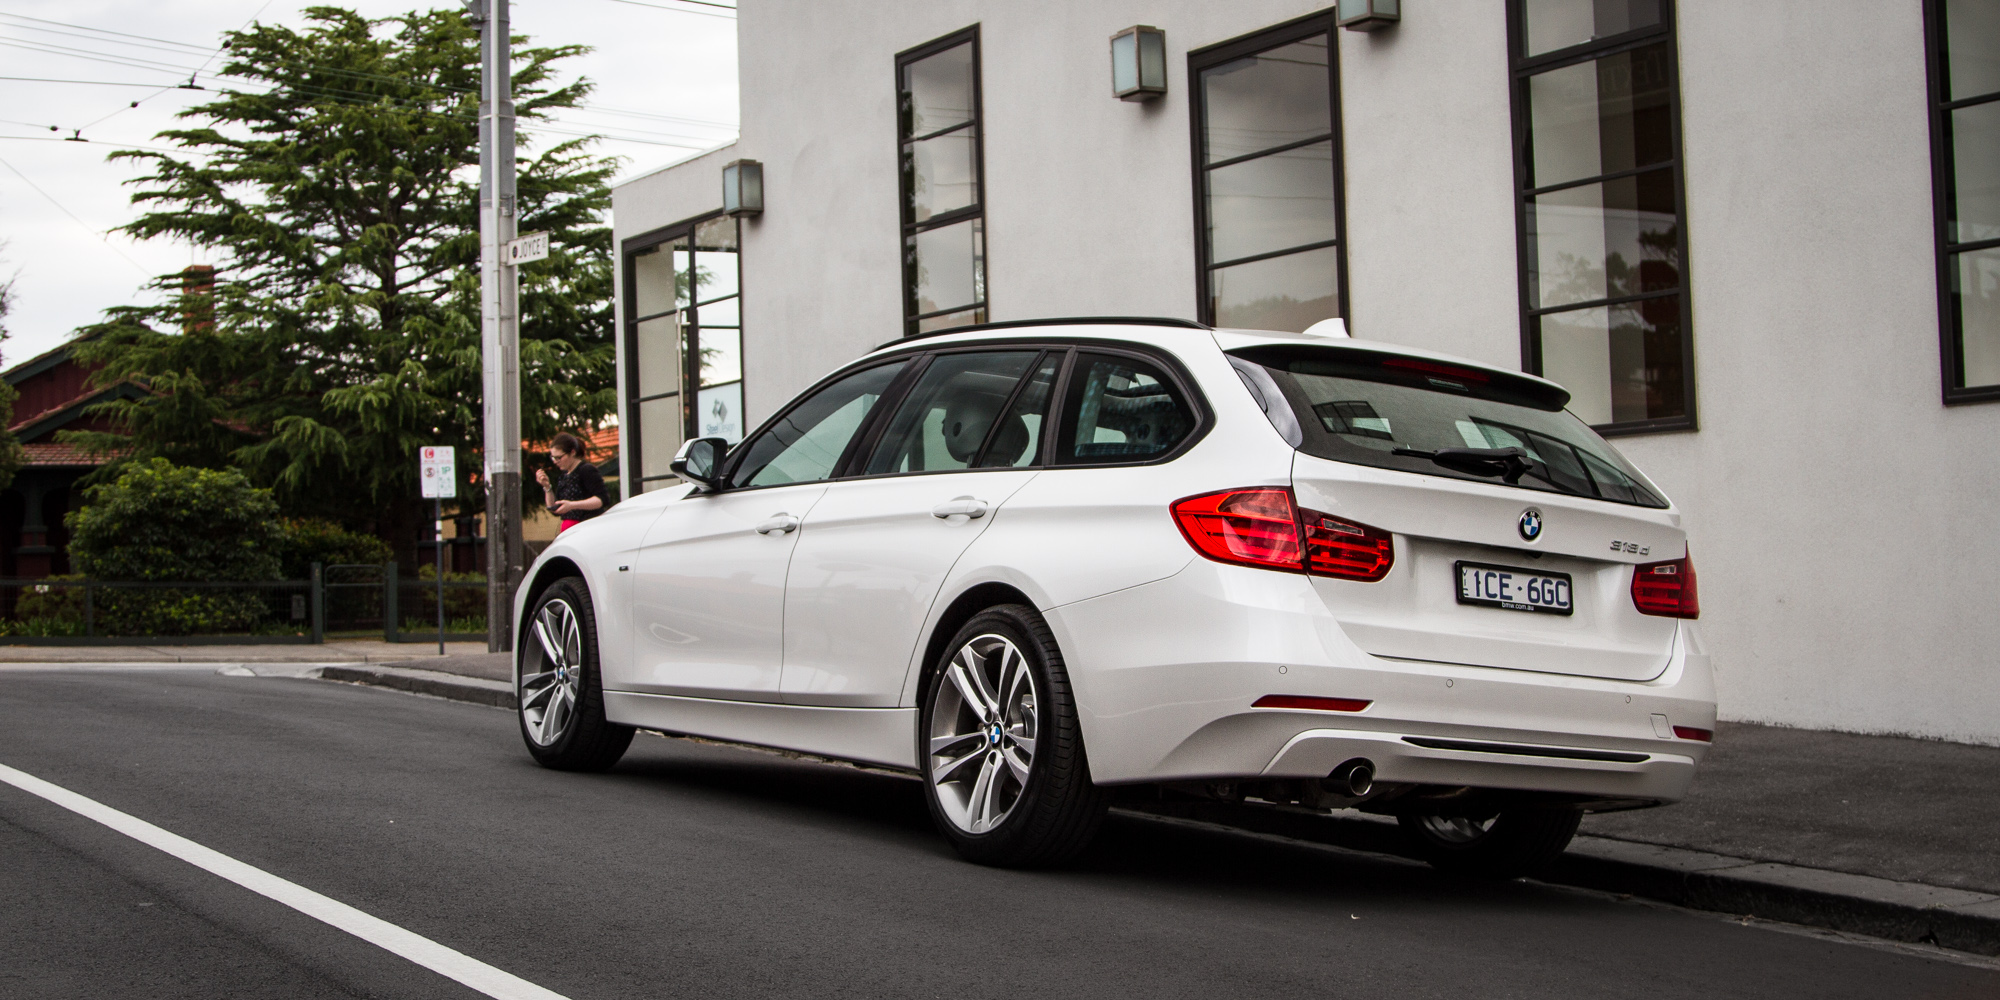 2015 BMW 318d Touring Review - photos | CarAdvice